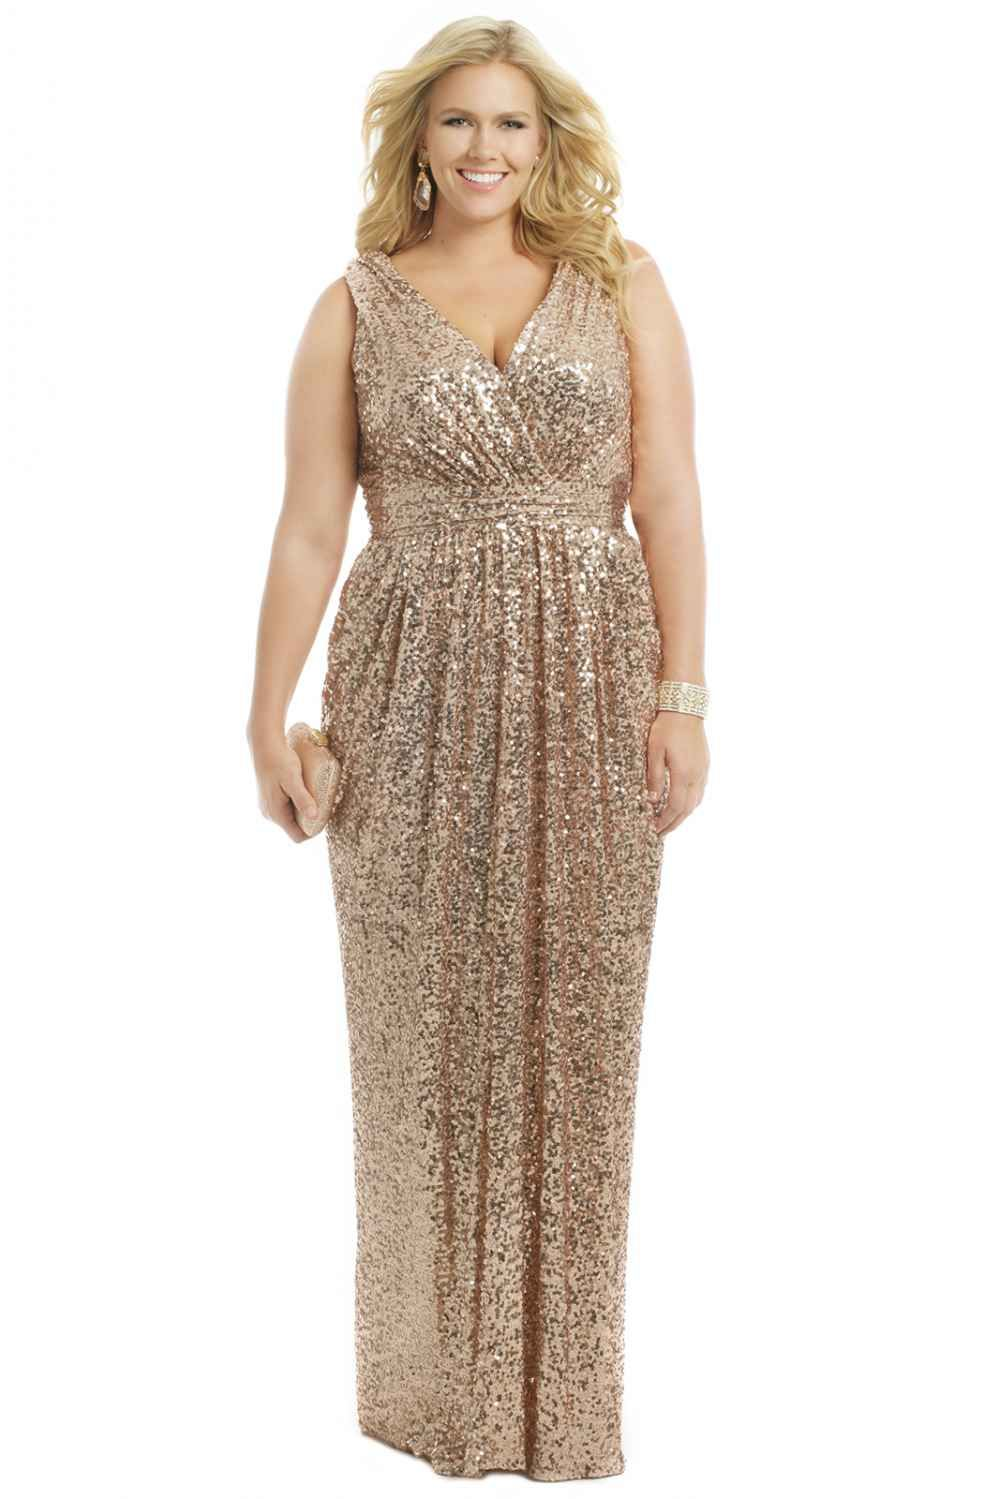 Rent The Runway Plus Size - Formal Wear For Curvy Women | Formal ...